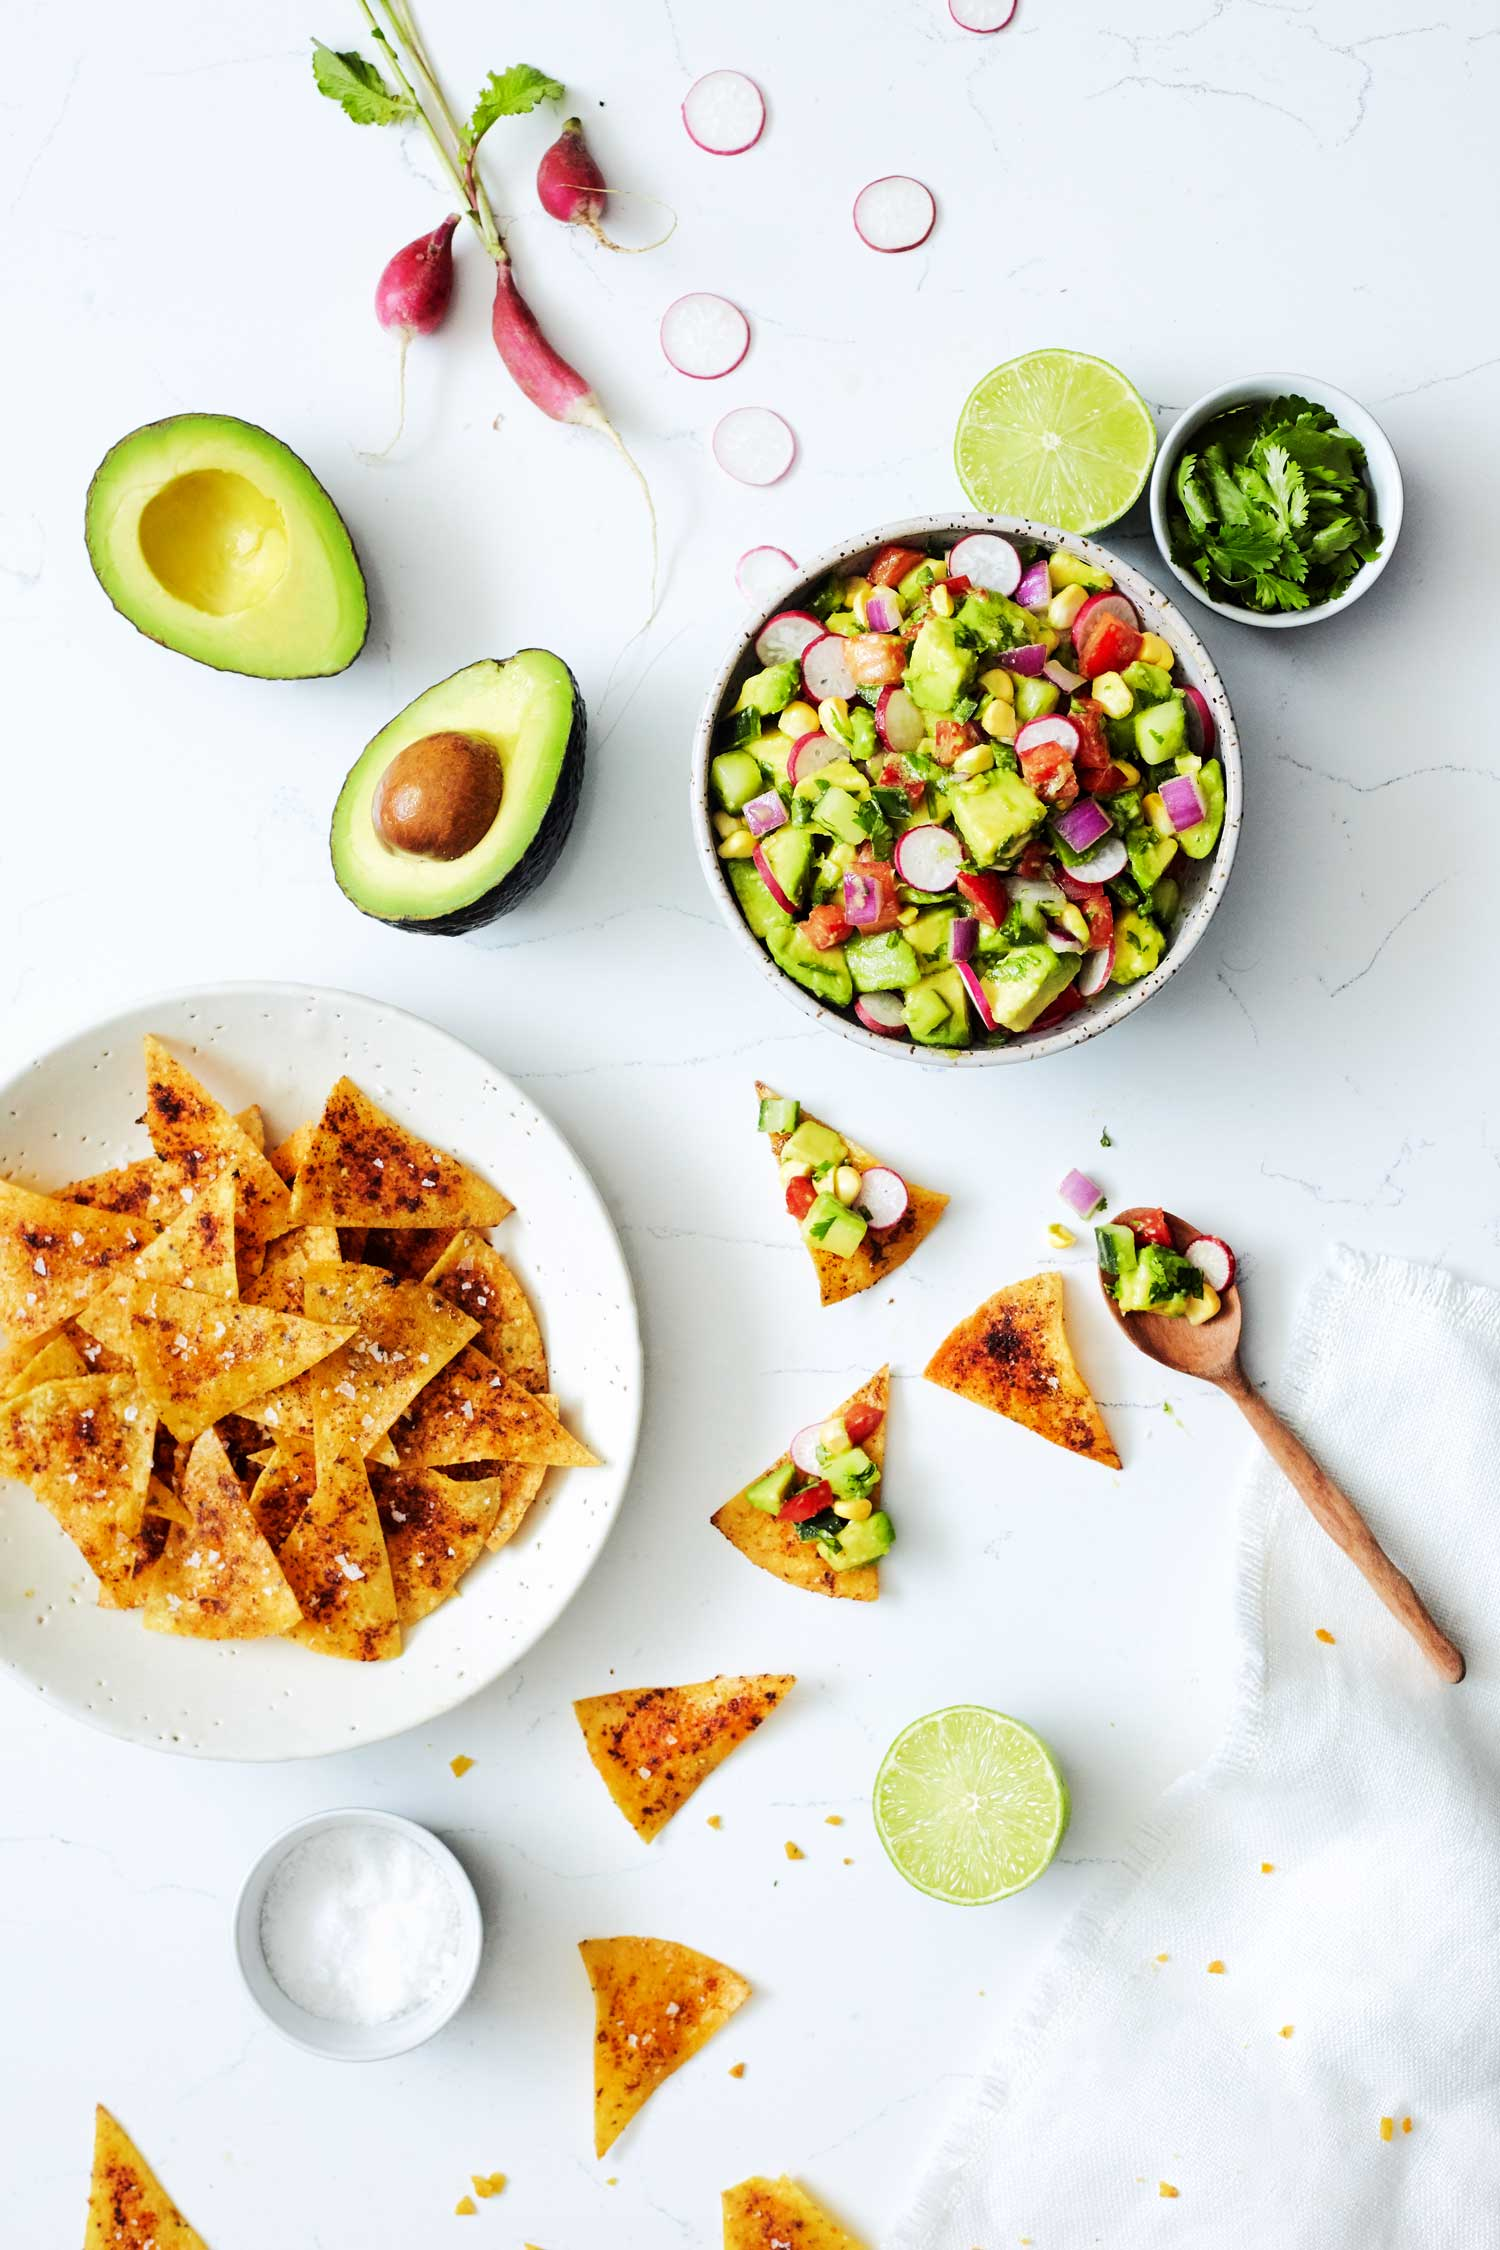 Avocado-Ceviche-&-Chili-Lime-Chips-Evergreen-Kitchen-1.jpg